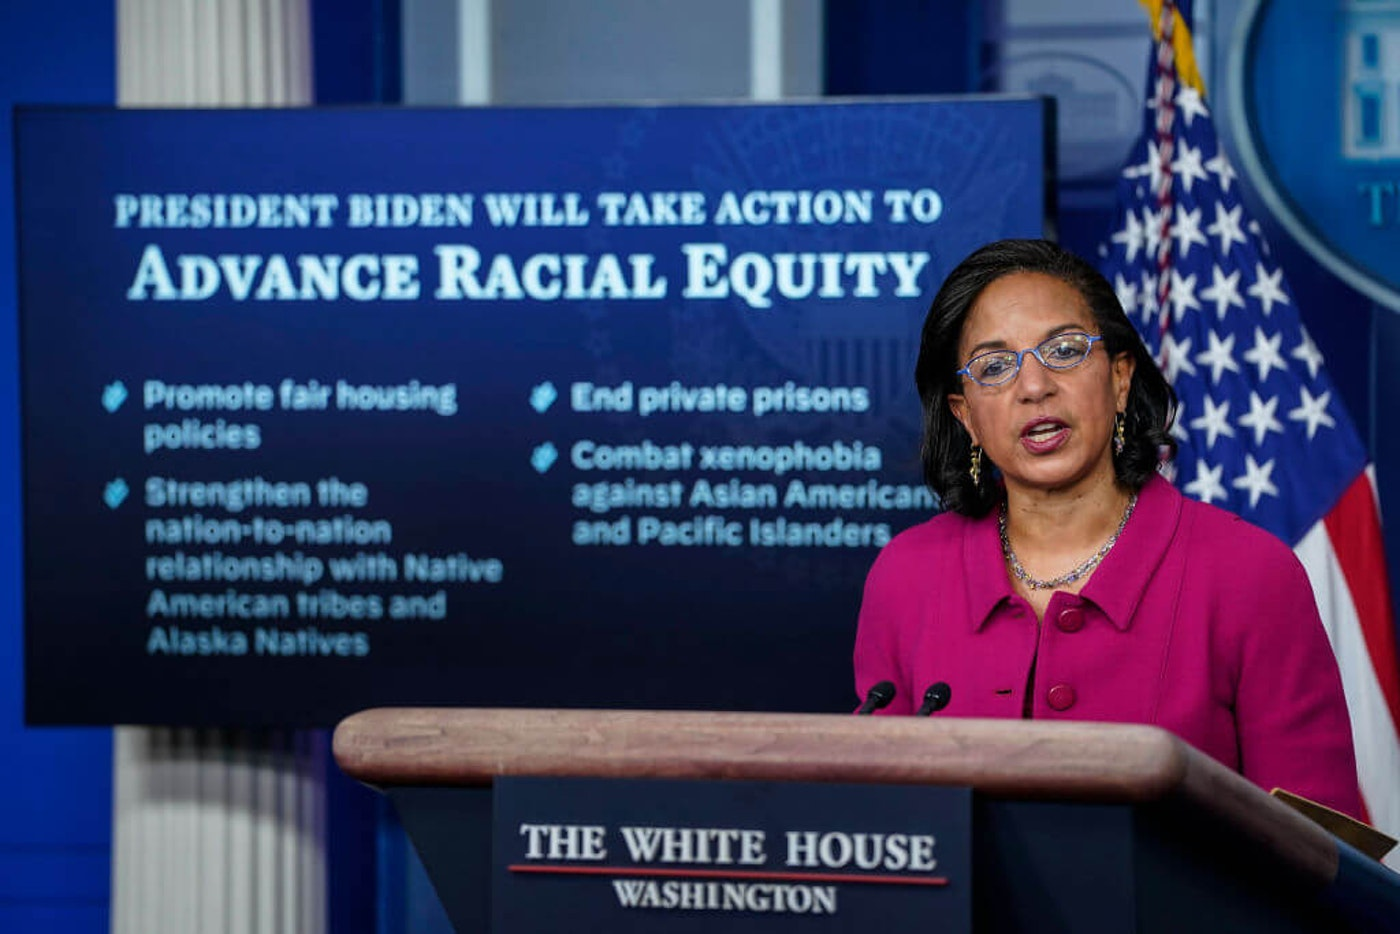 Domestic Policy Advisor Susan Rice speaks during the daily press briefing at the White House on January 26, 2021 in Washington, DC. Rice discussed plans for President Biden's racial equity agenda. (Photo by Drew Angerer/Getty Images)